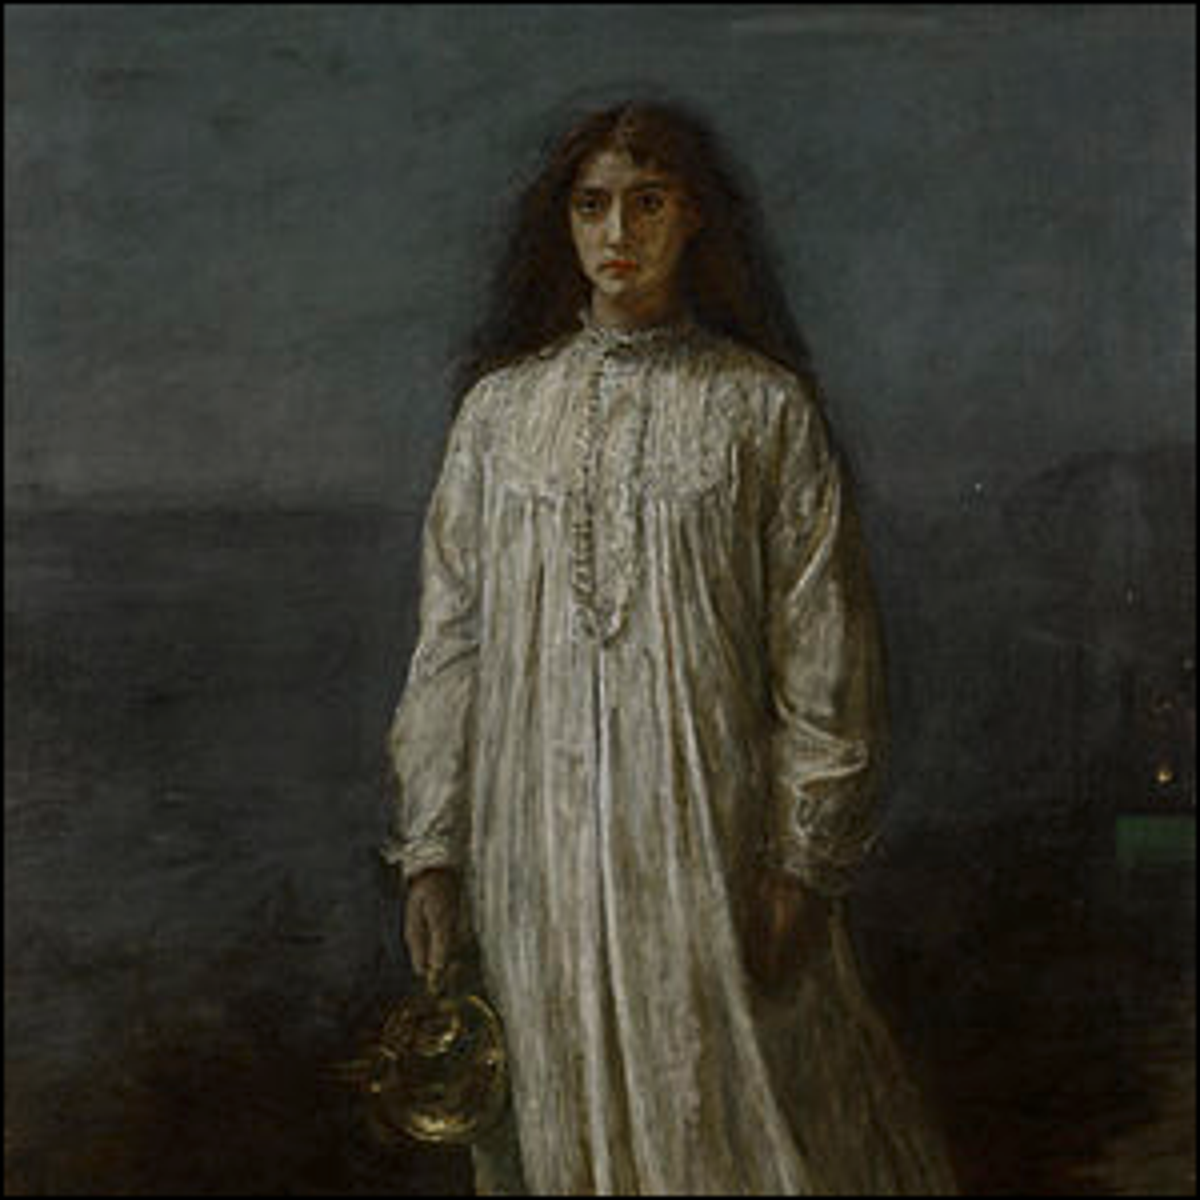 A picture of The Somnambulist, an 1871 painting by John Everett Millais.